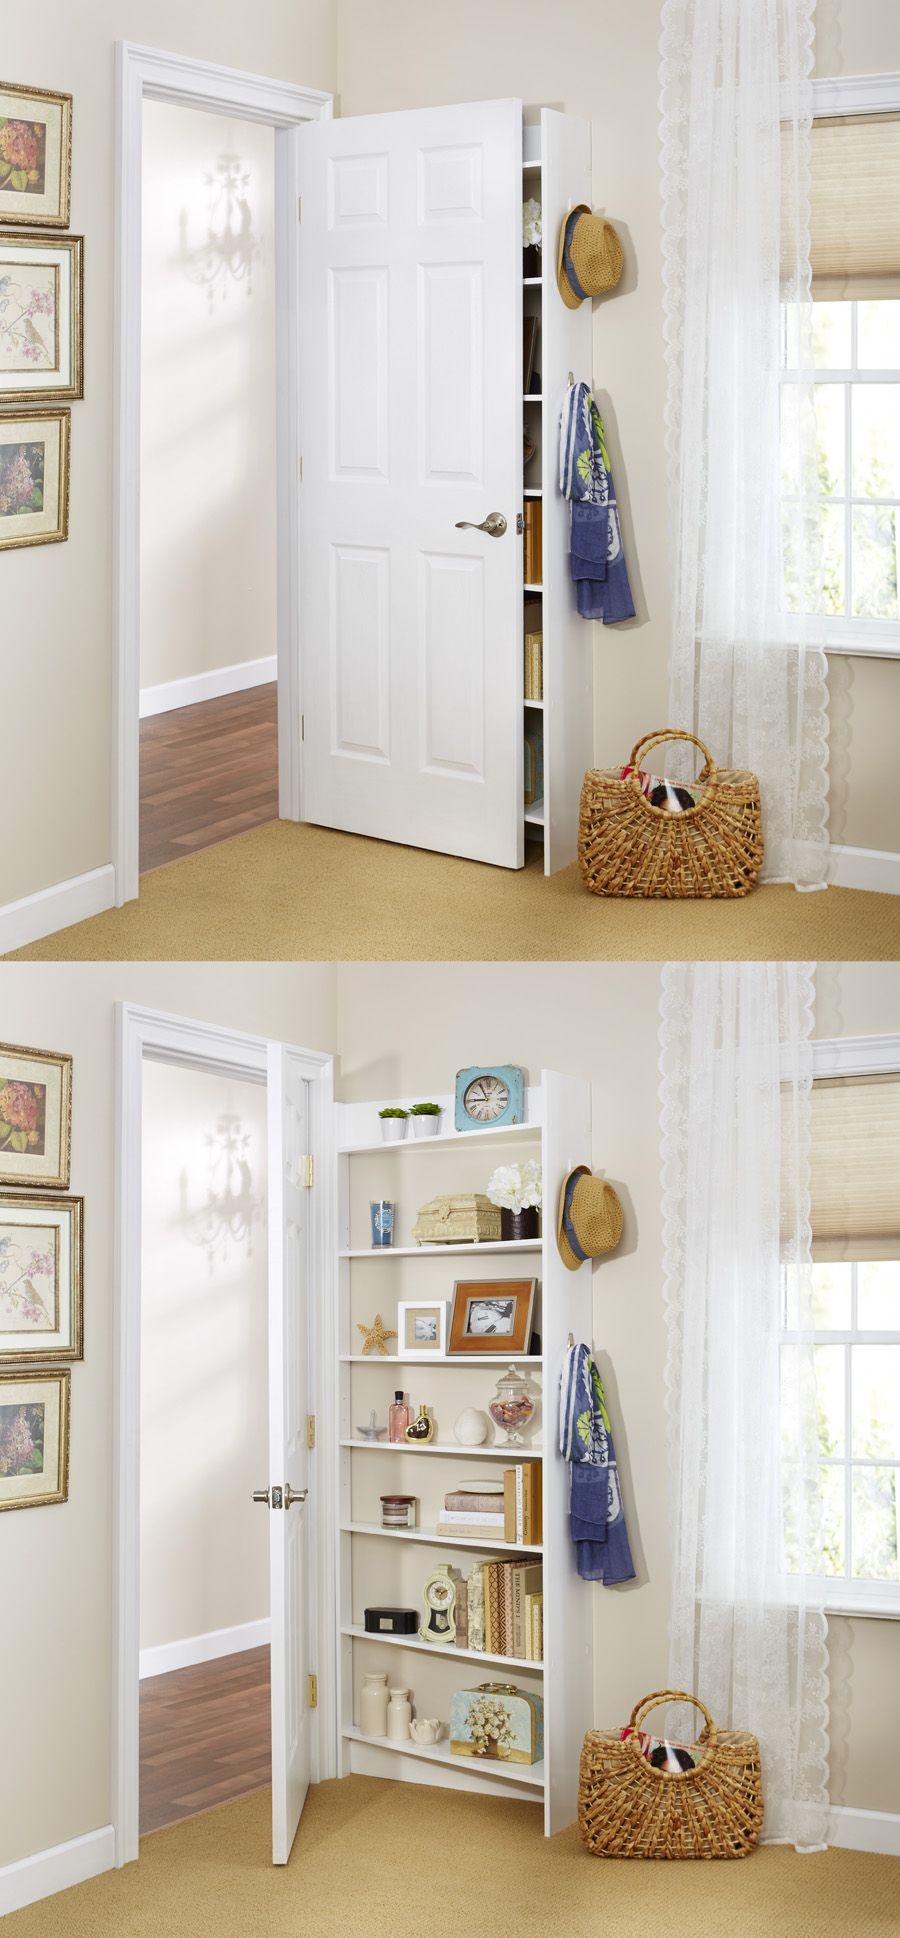 small bedroom storage ideas. Hide Behind The Door Shelving System By Foremost , Because It\u0027s Possible To Fit Extra Storage EVERYWHERE. Small Bedroom Ideas